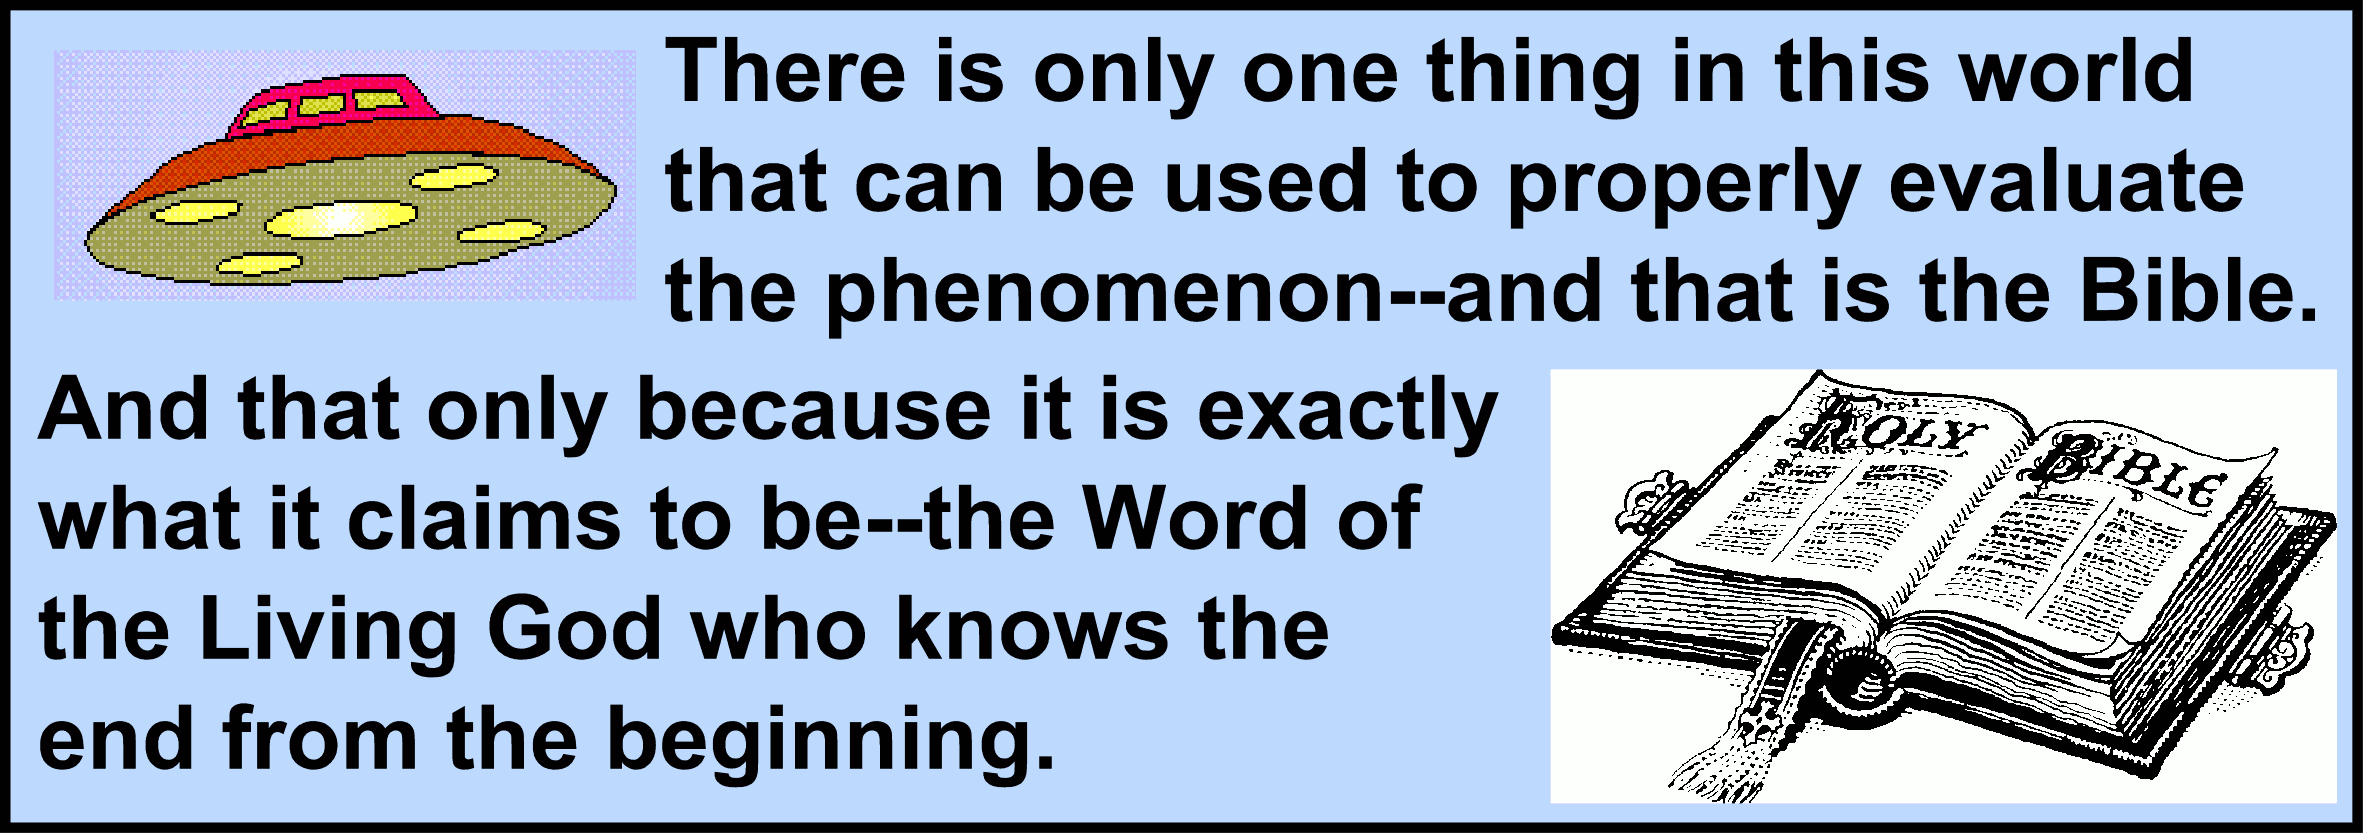 Image:There is only one thing in this world that can be used to properly evaluate the phenomenon--and that is the Bible. And that only because it is exactly what it claims to be--the Word of the Living God who knows the end from the beginning.